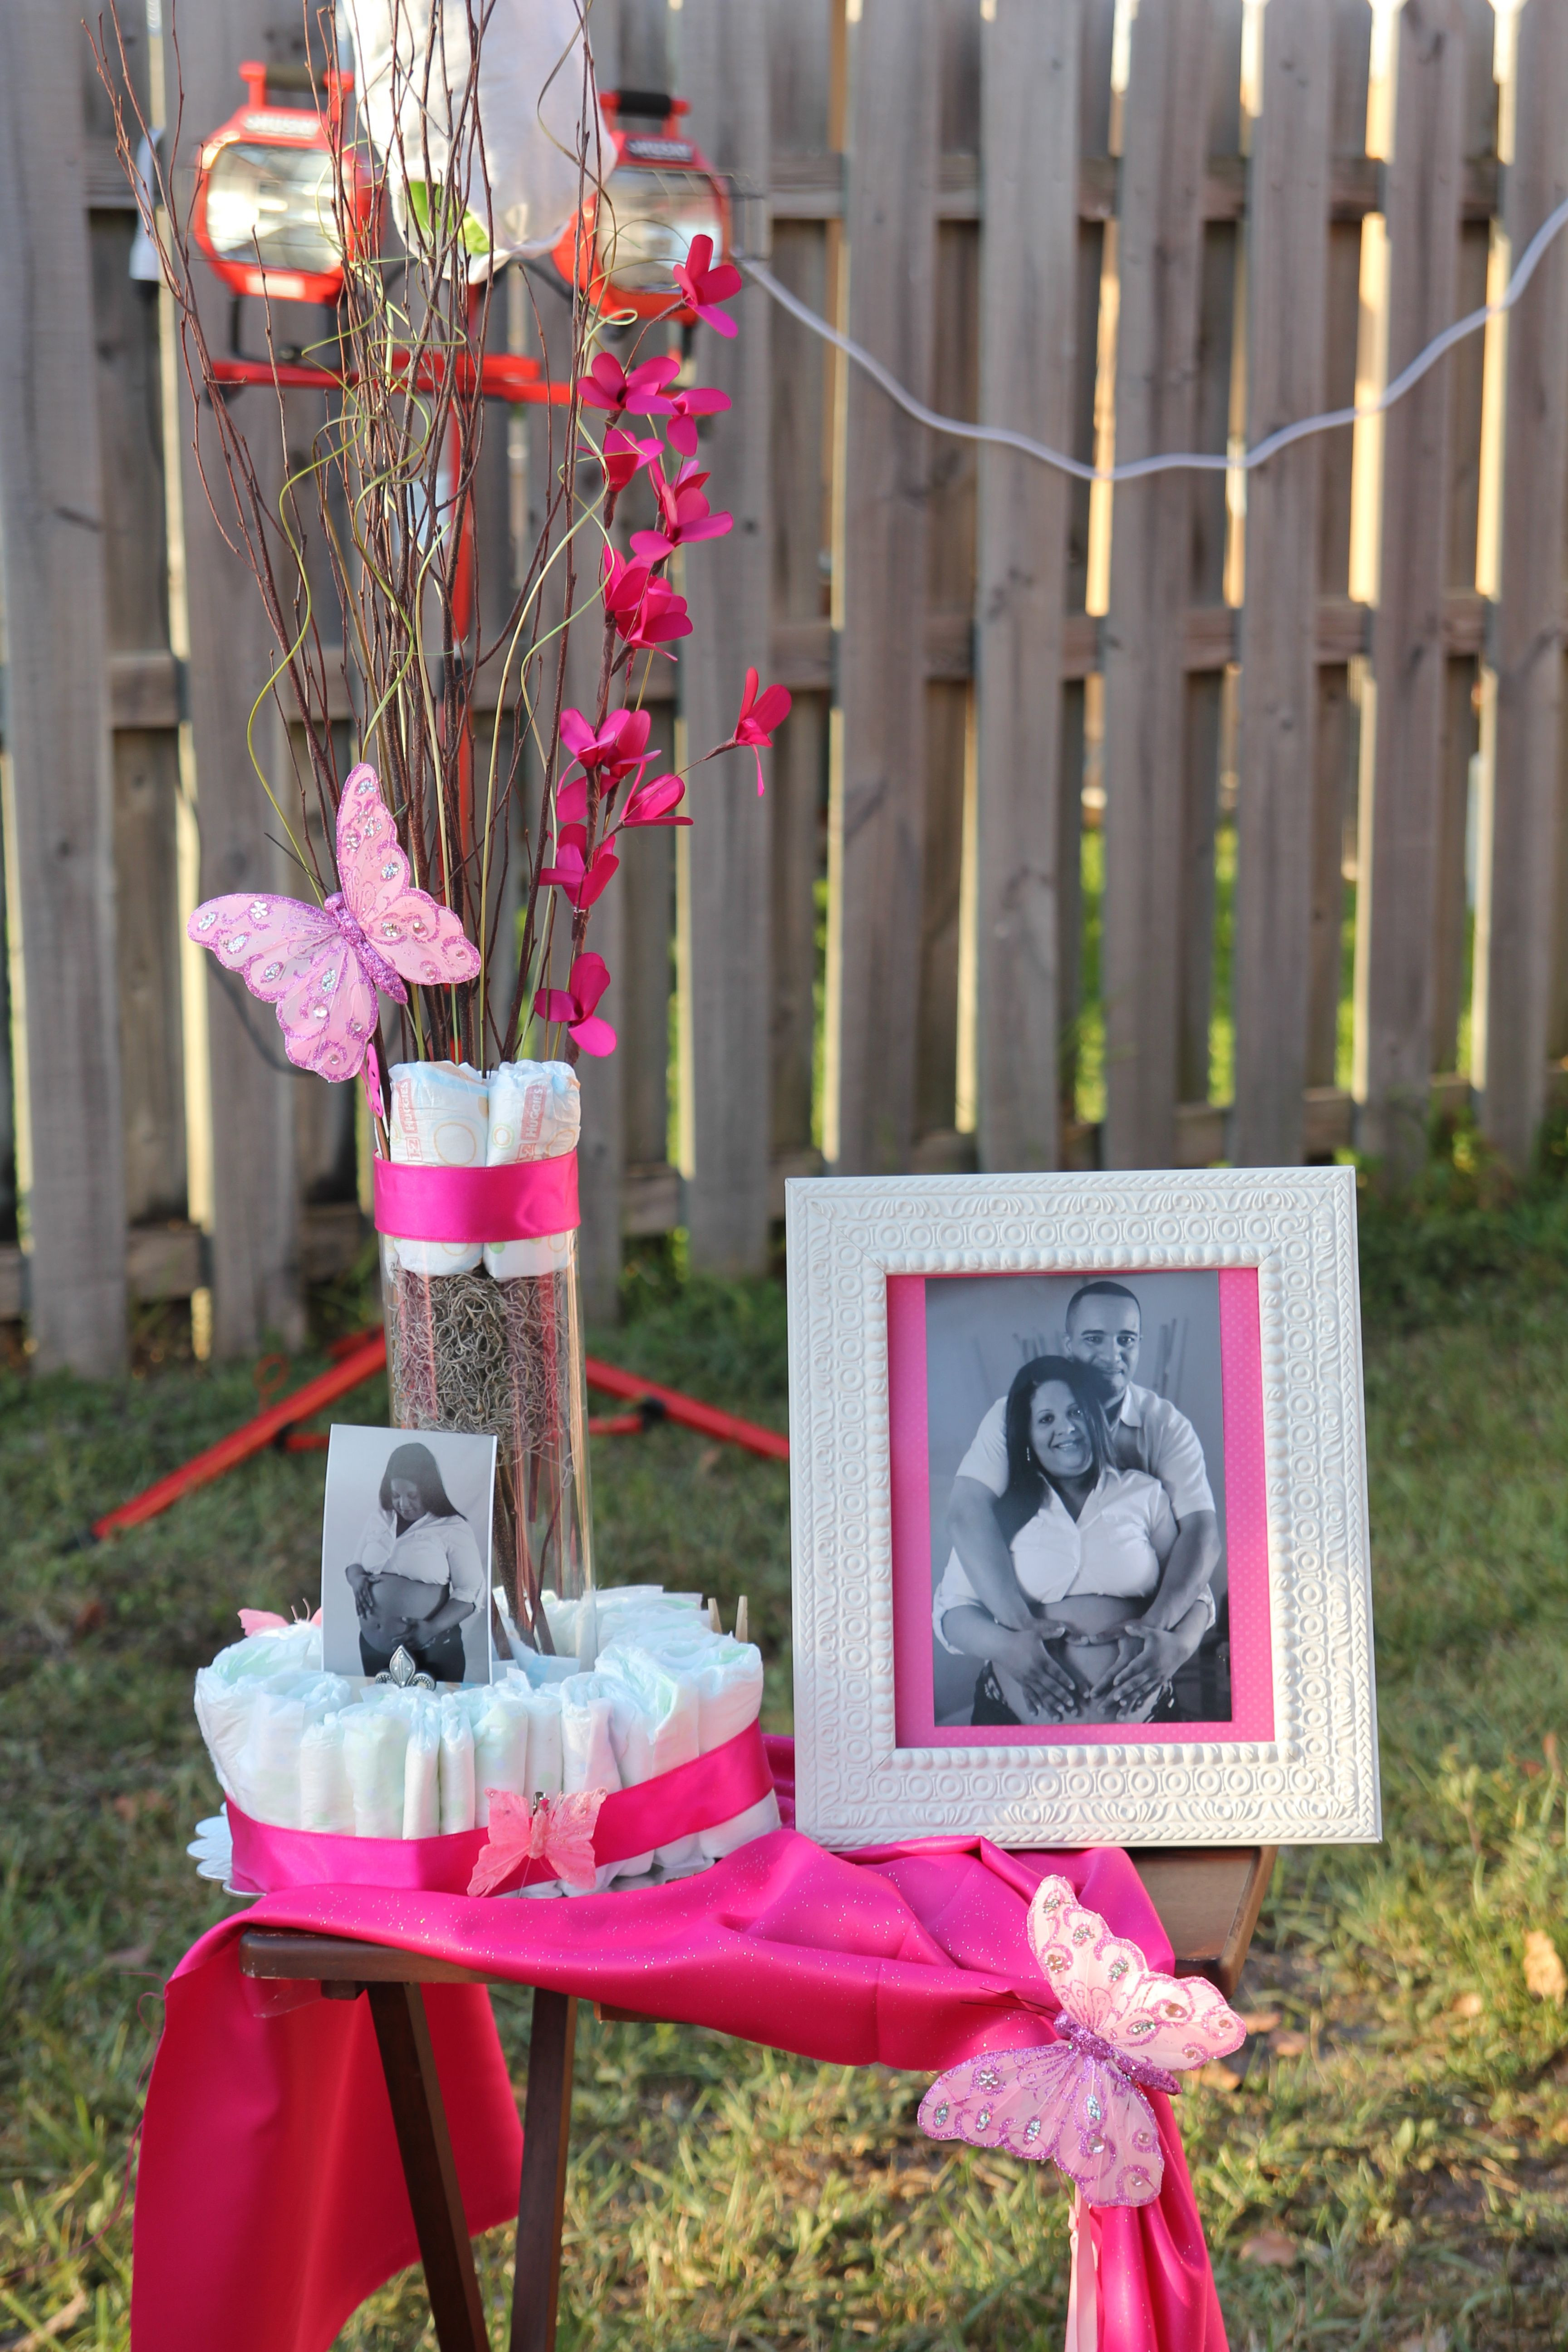 Best ideas about Baby Shower Gift Table Ideas . Save or Pin babyshower decorations Great for registry table at main Now.